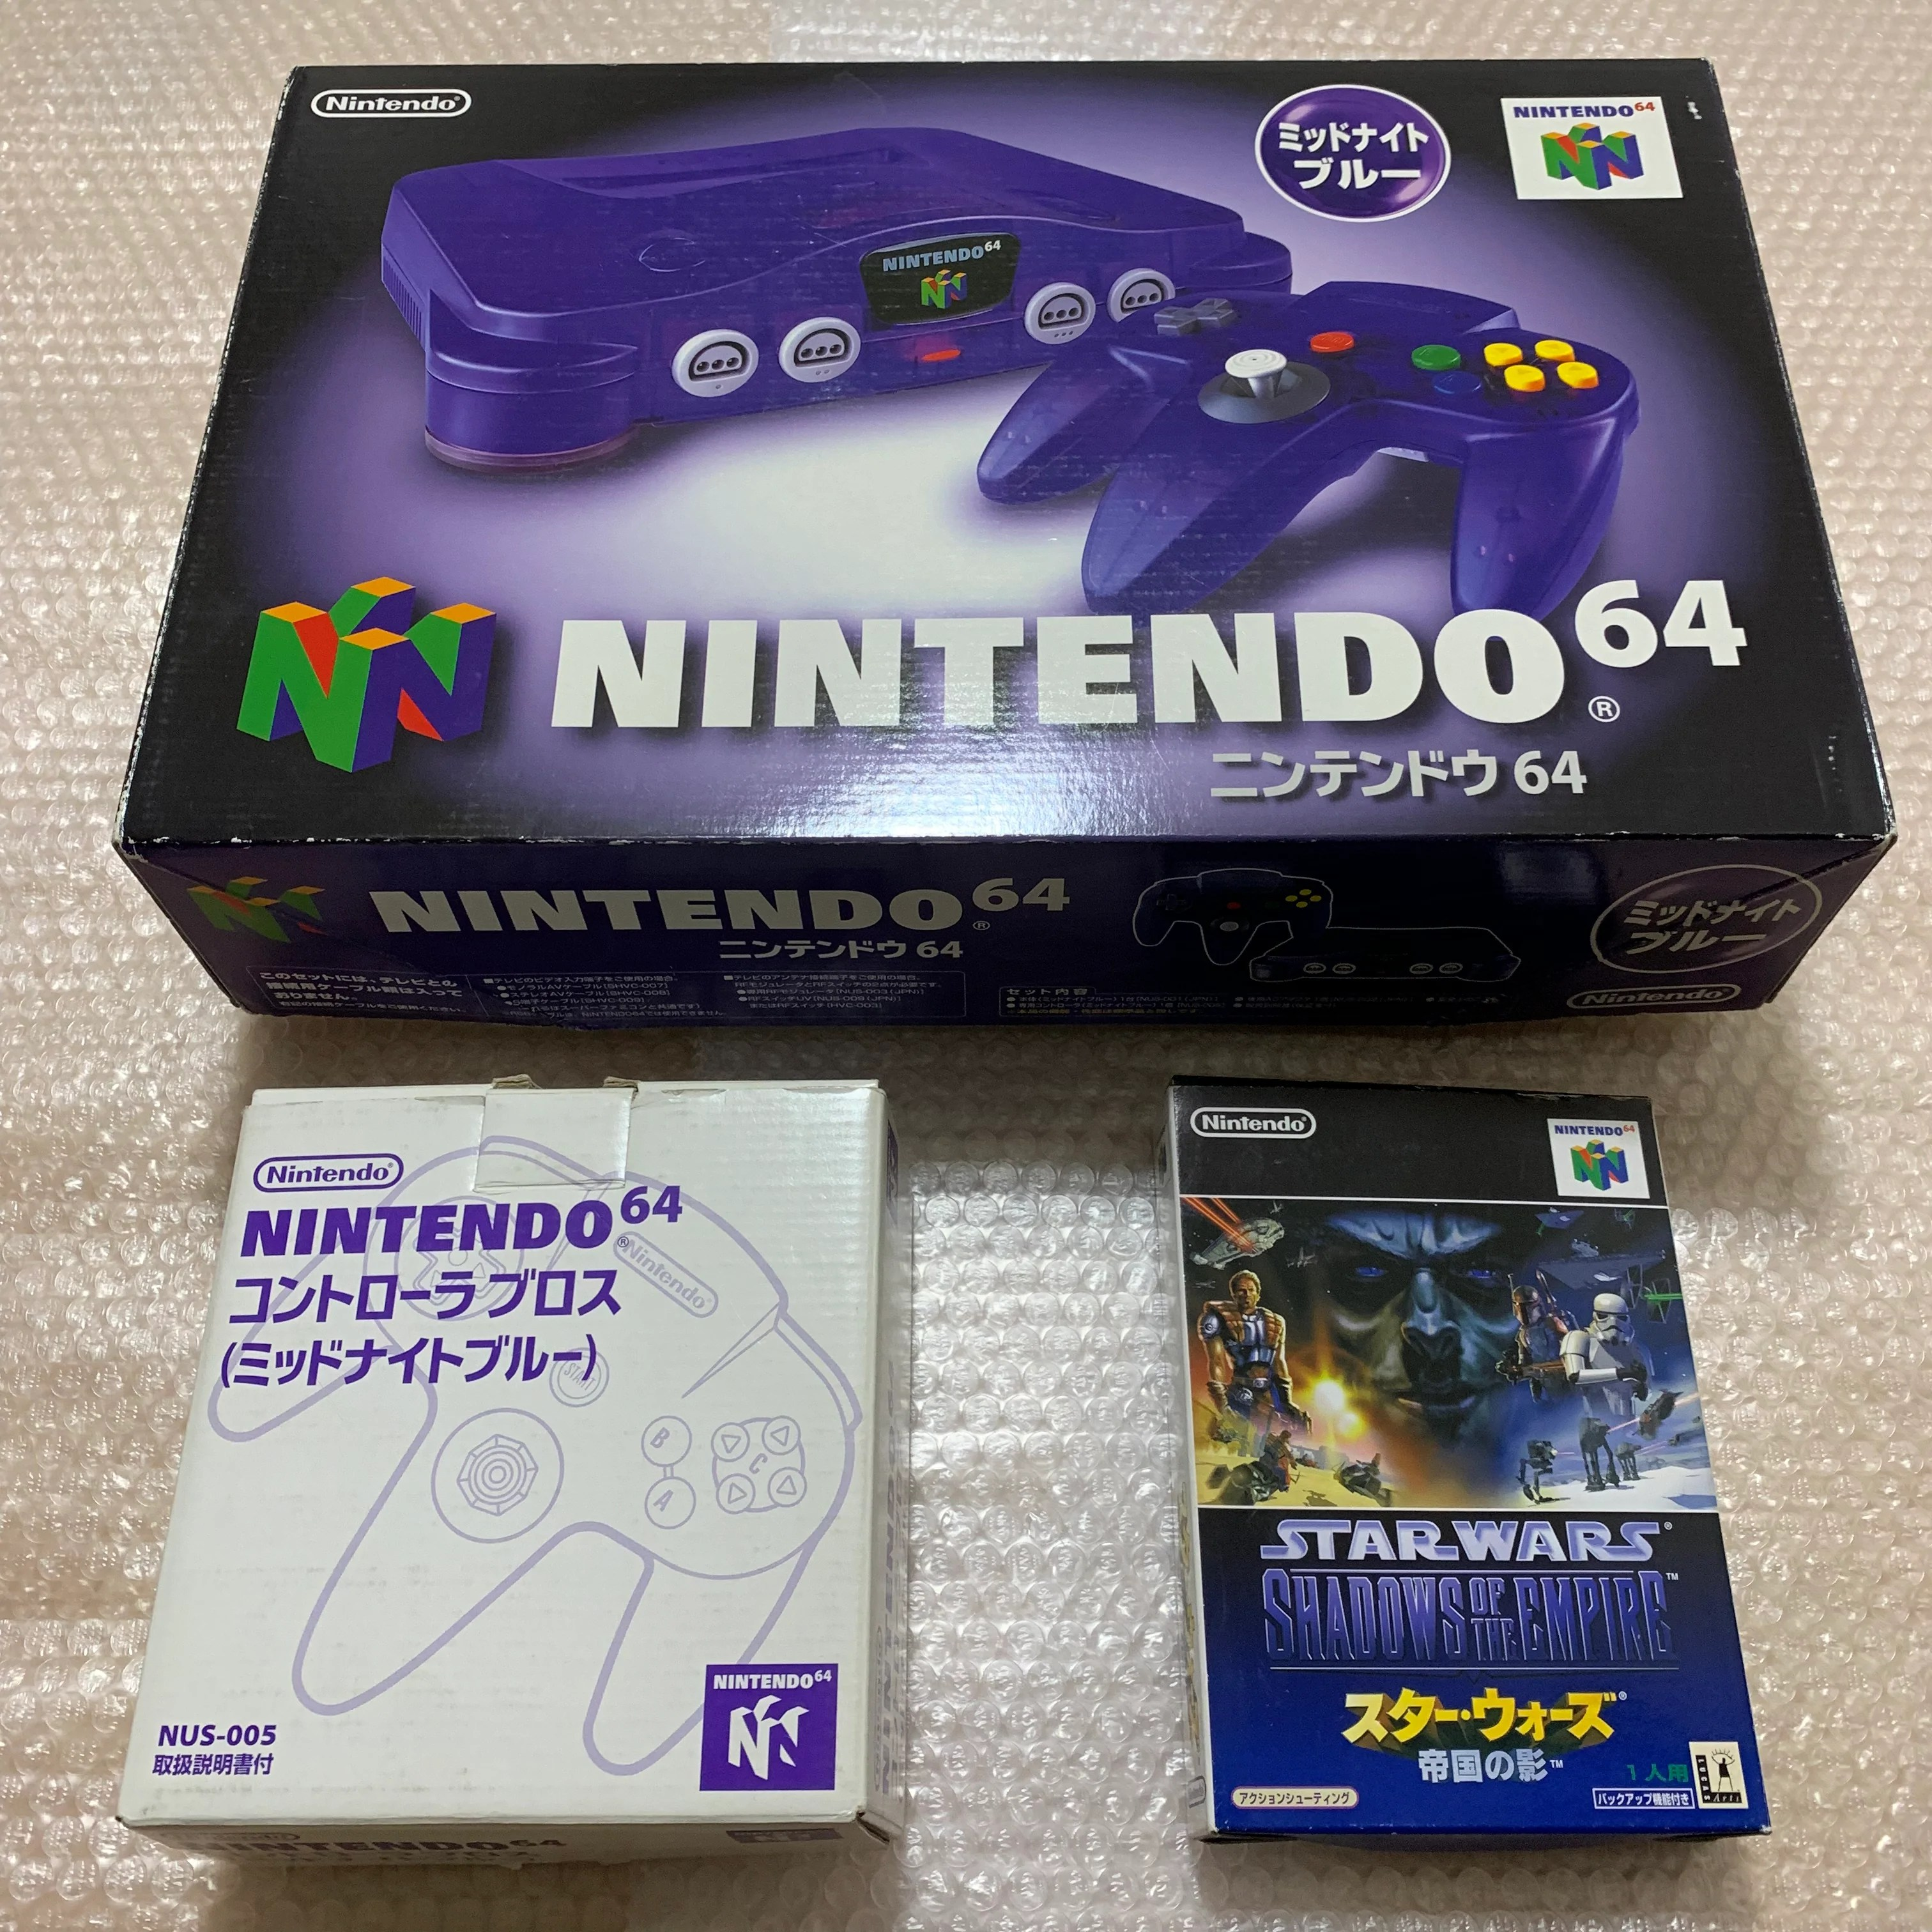 clear purple nintendo 64 in box set with ultra hdmi kit compatible with jp and us games [ 3024 x 3024 Pixel ]